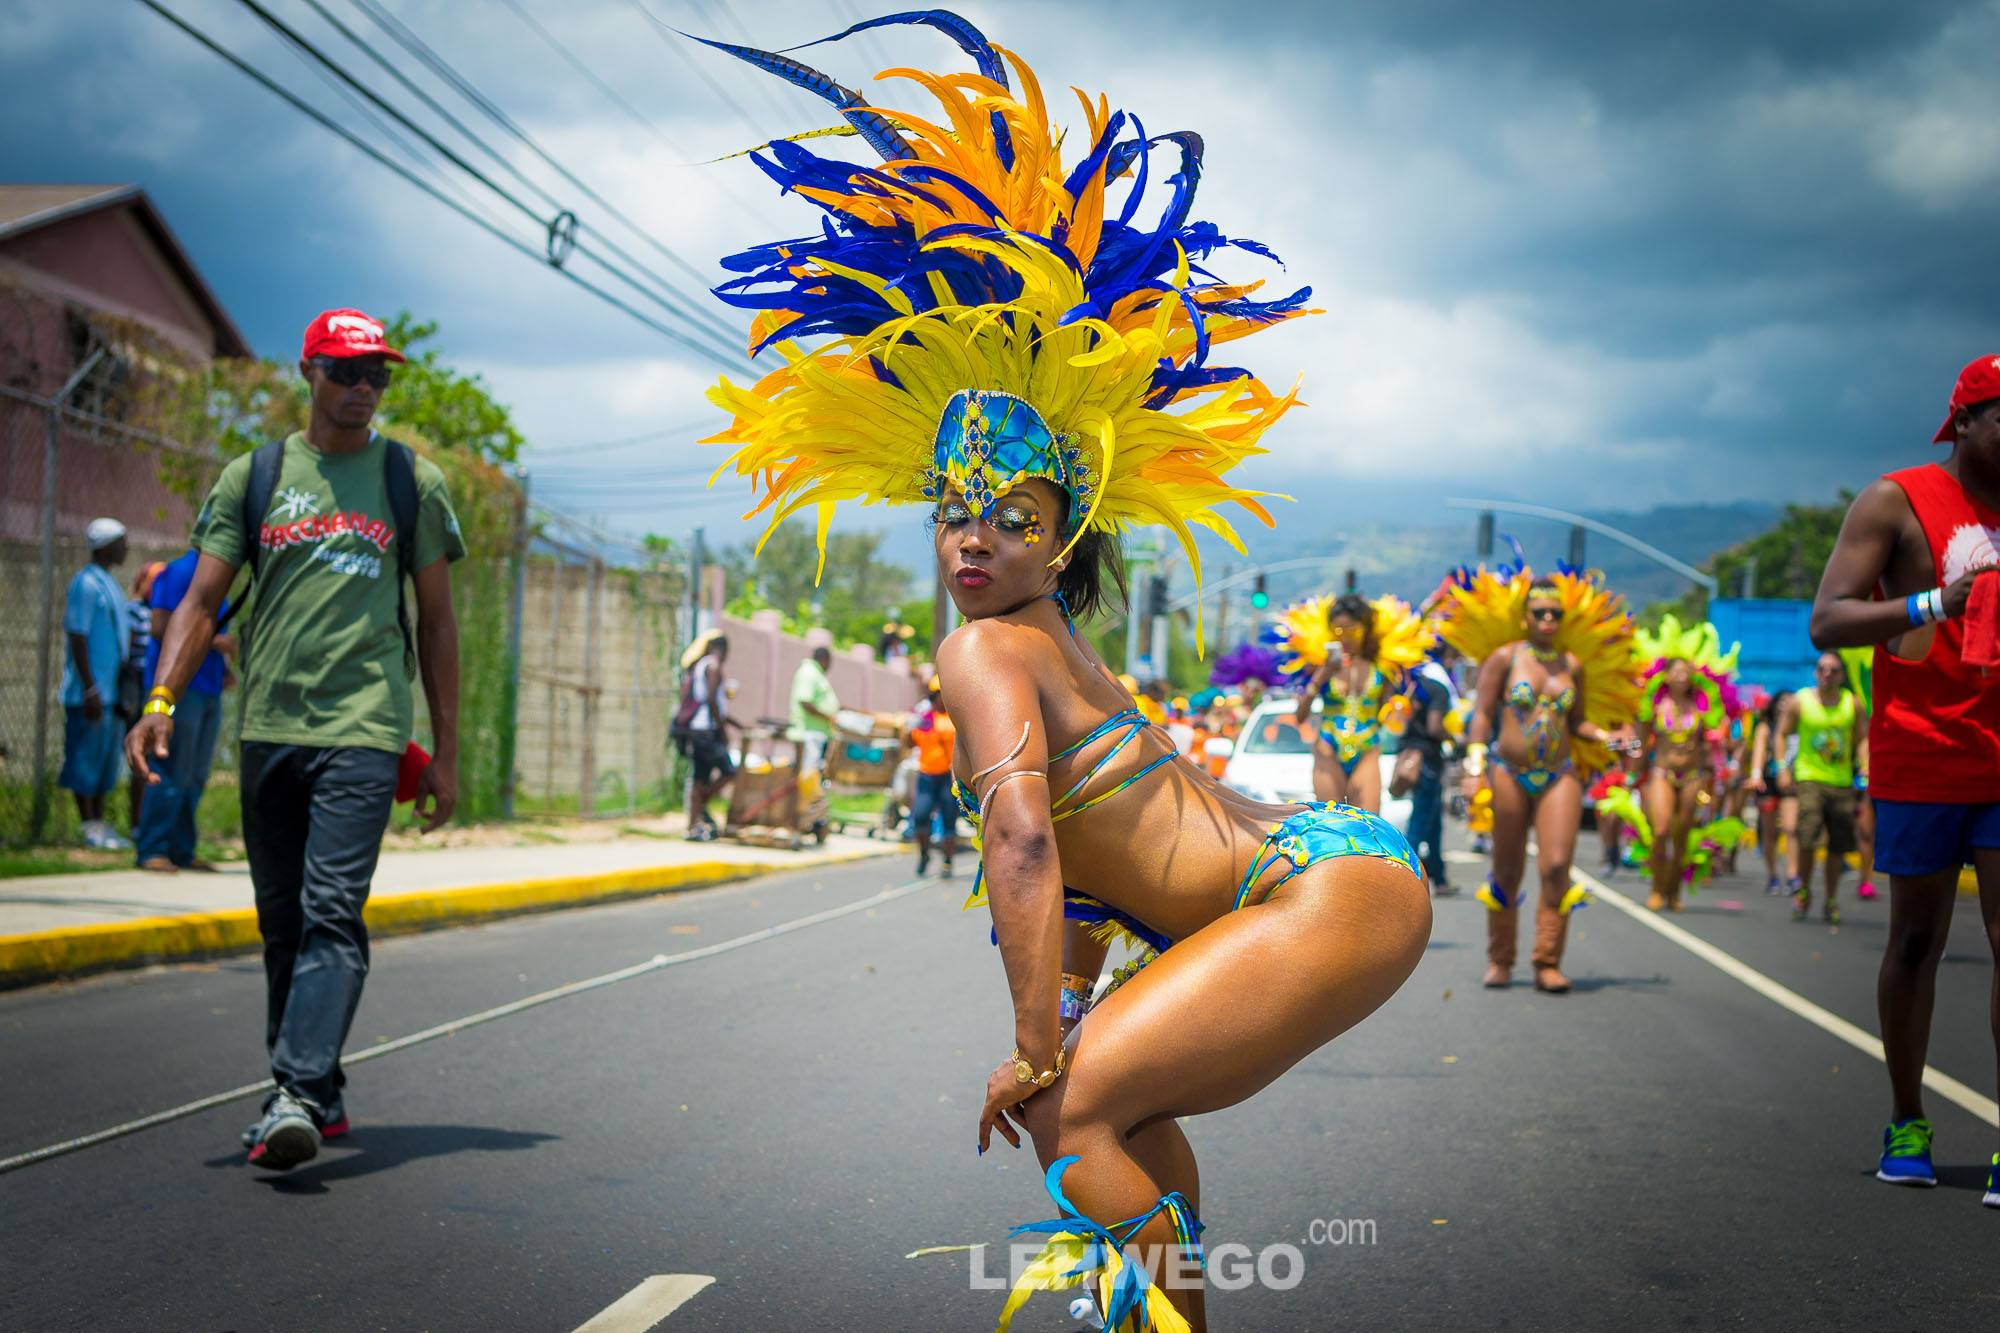 LehwegoSleek for Jamaica carnival. A look back before moving ahead!